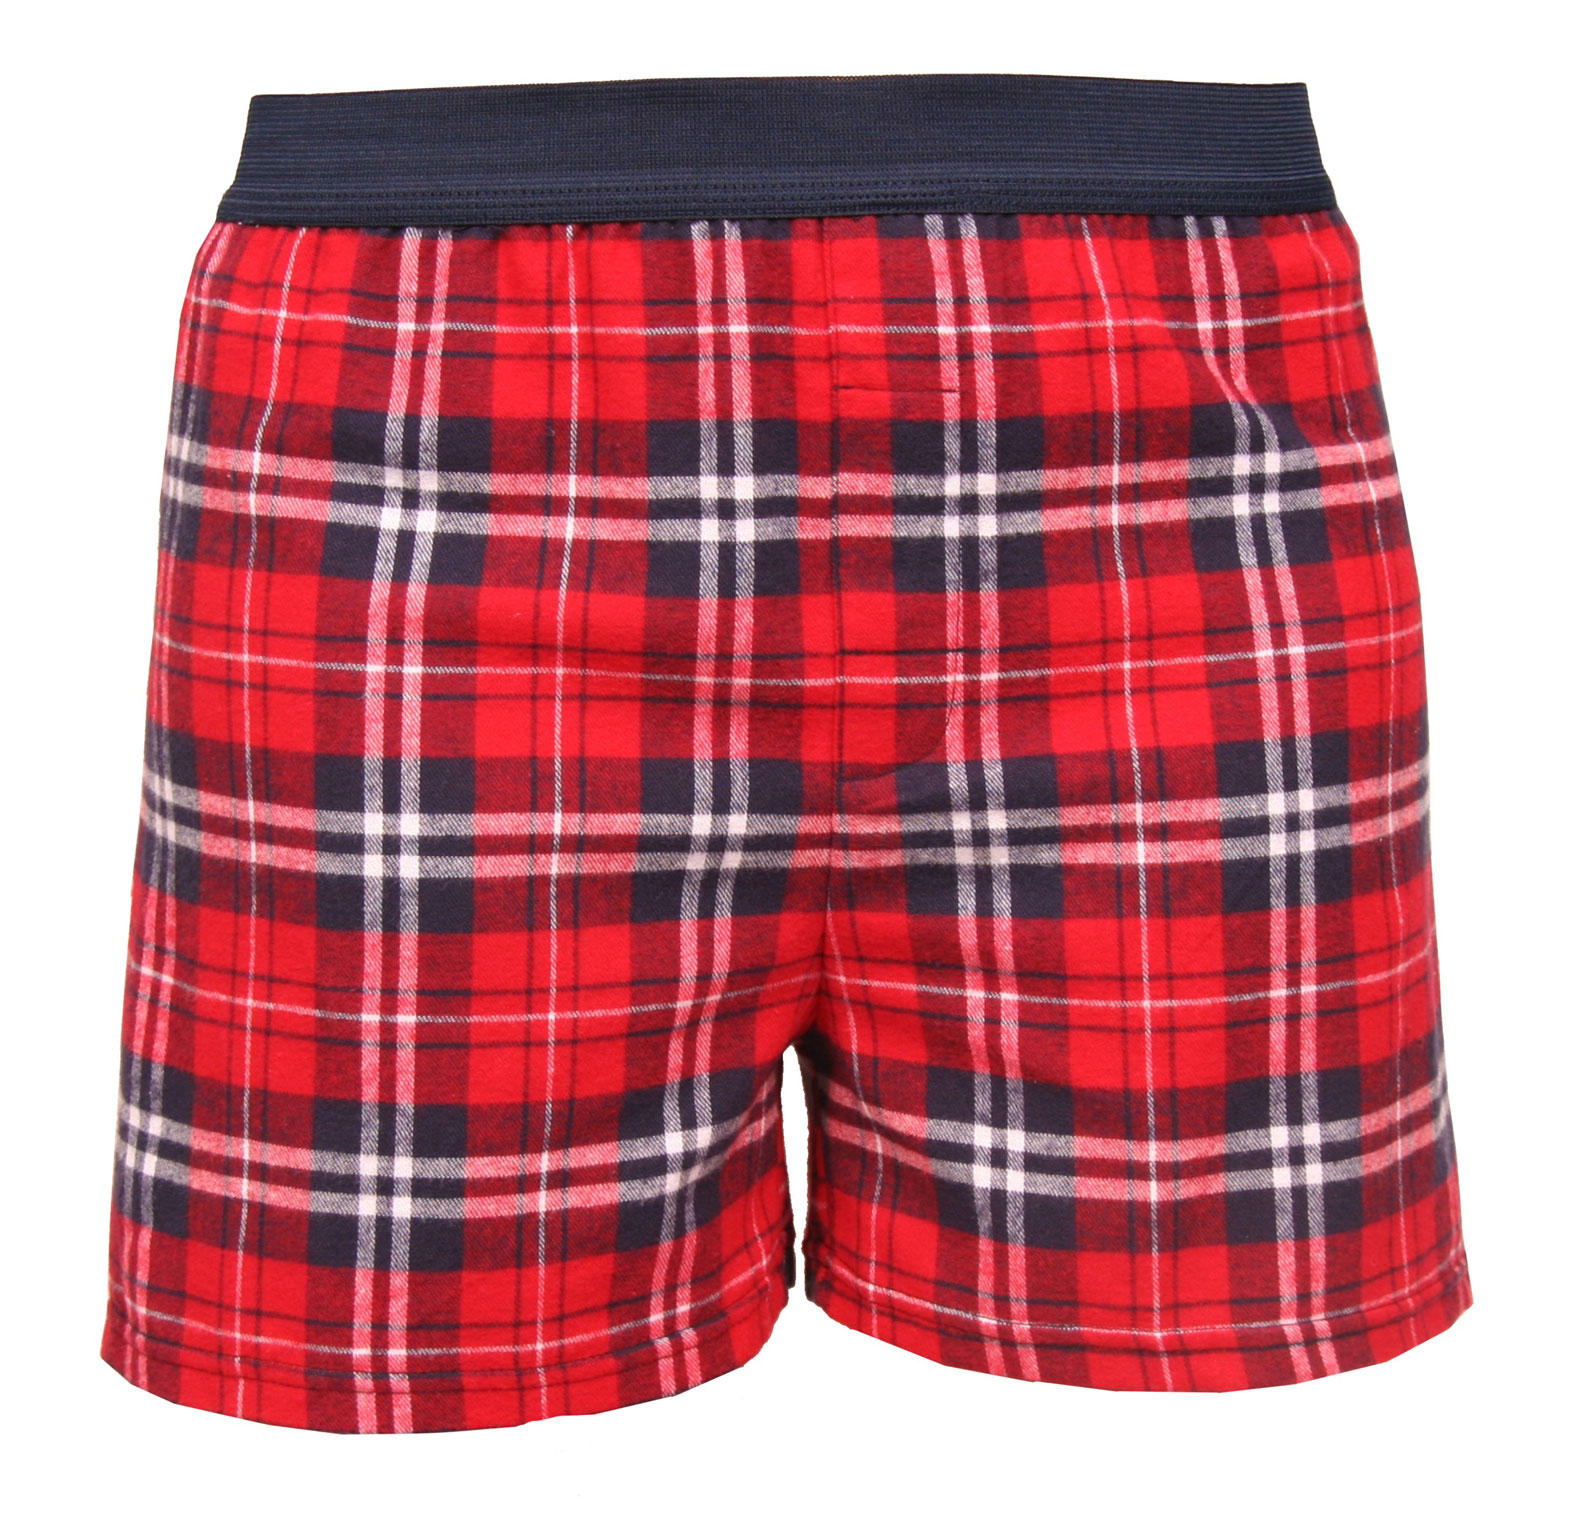 Adult Exposed Elastic Waistband Flannel Boxers